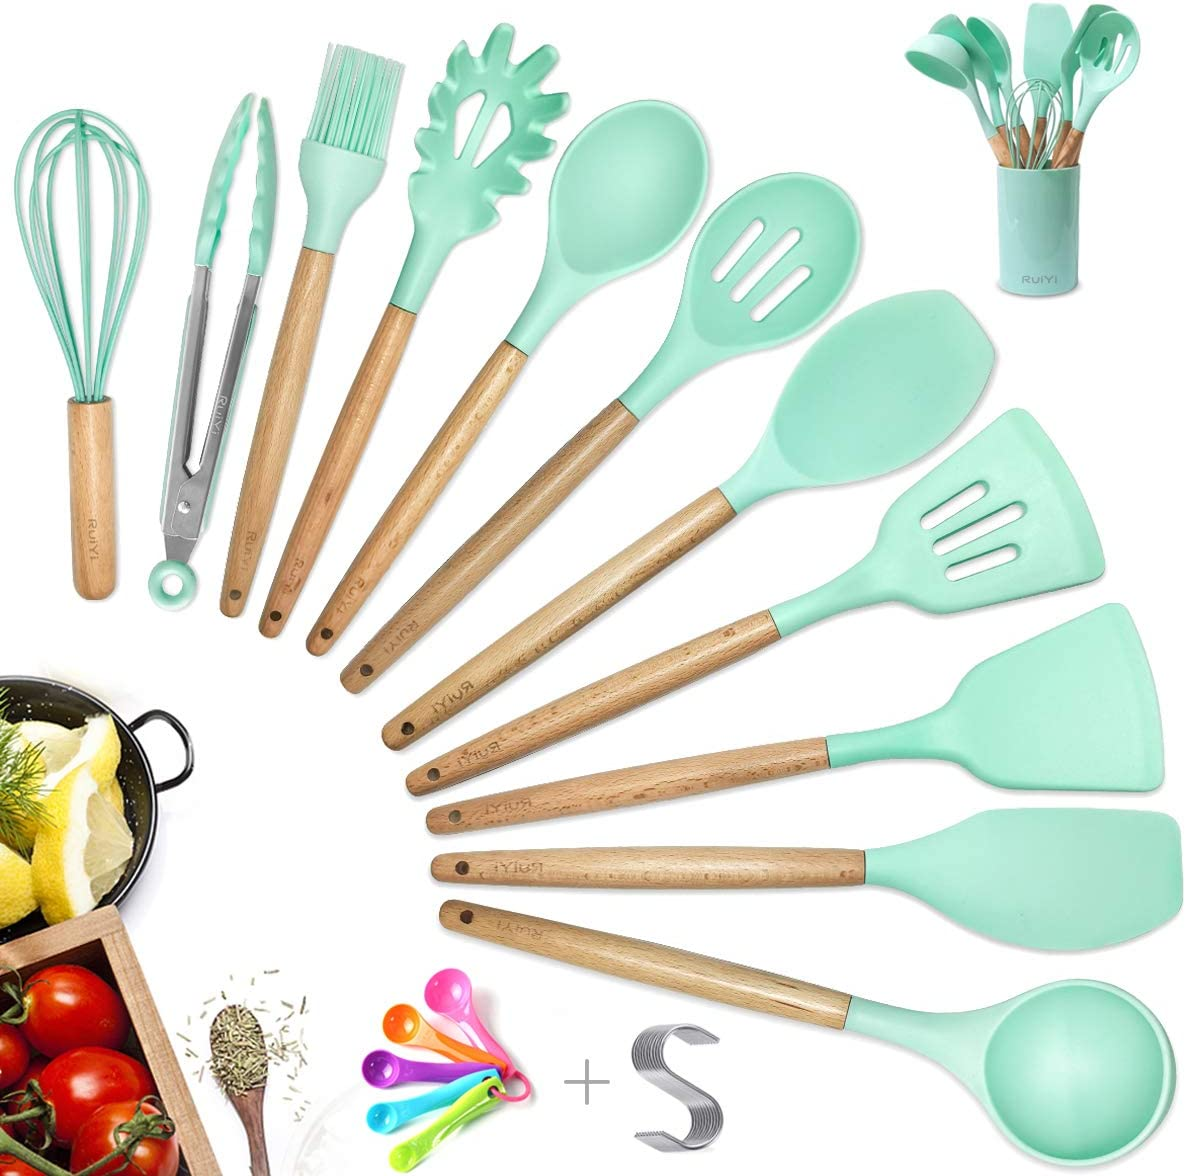 Amazon Com Kitchen Cooking Silicone Utensil Set With Holder 14pcs Pioneer Wooden Spatula Measuring Spoon Set Kitchen Tools For Nonstick Cookware Kitchen Gift For Woman Mom Family Teal Kitchen Dining